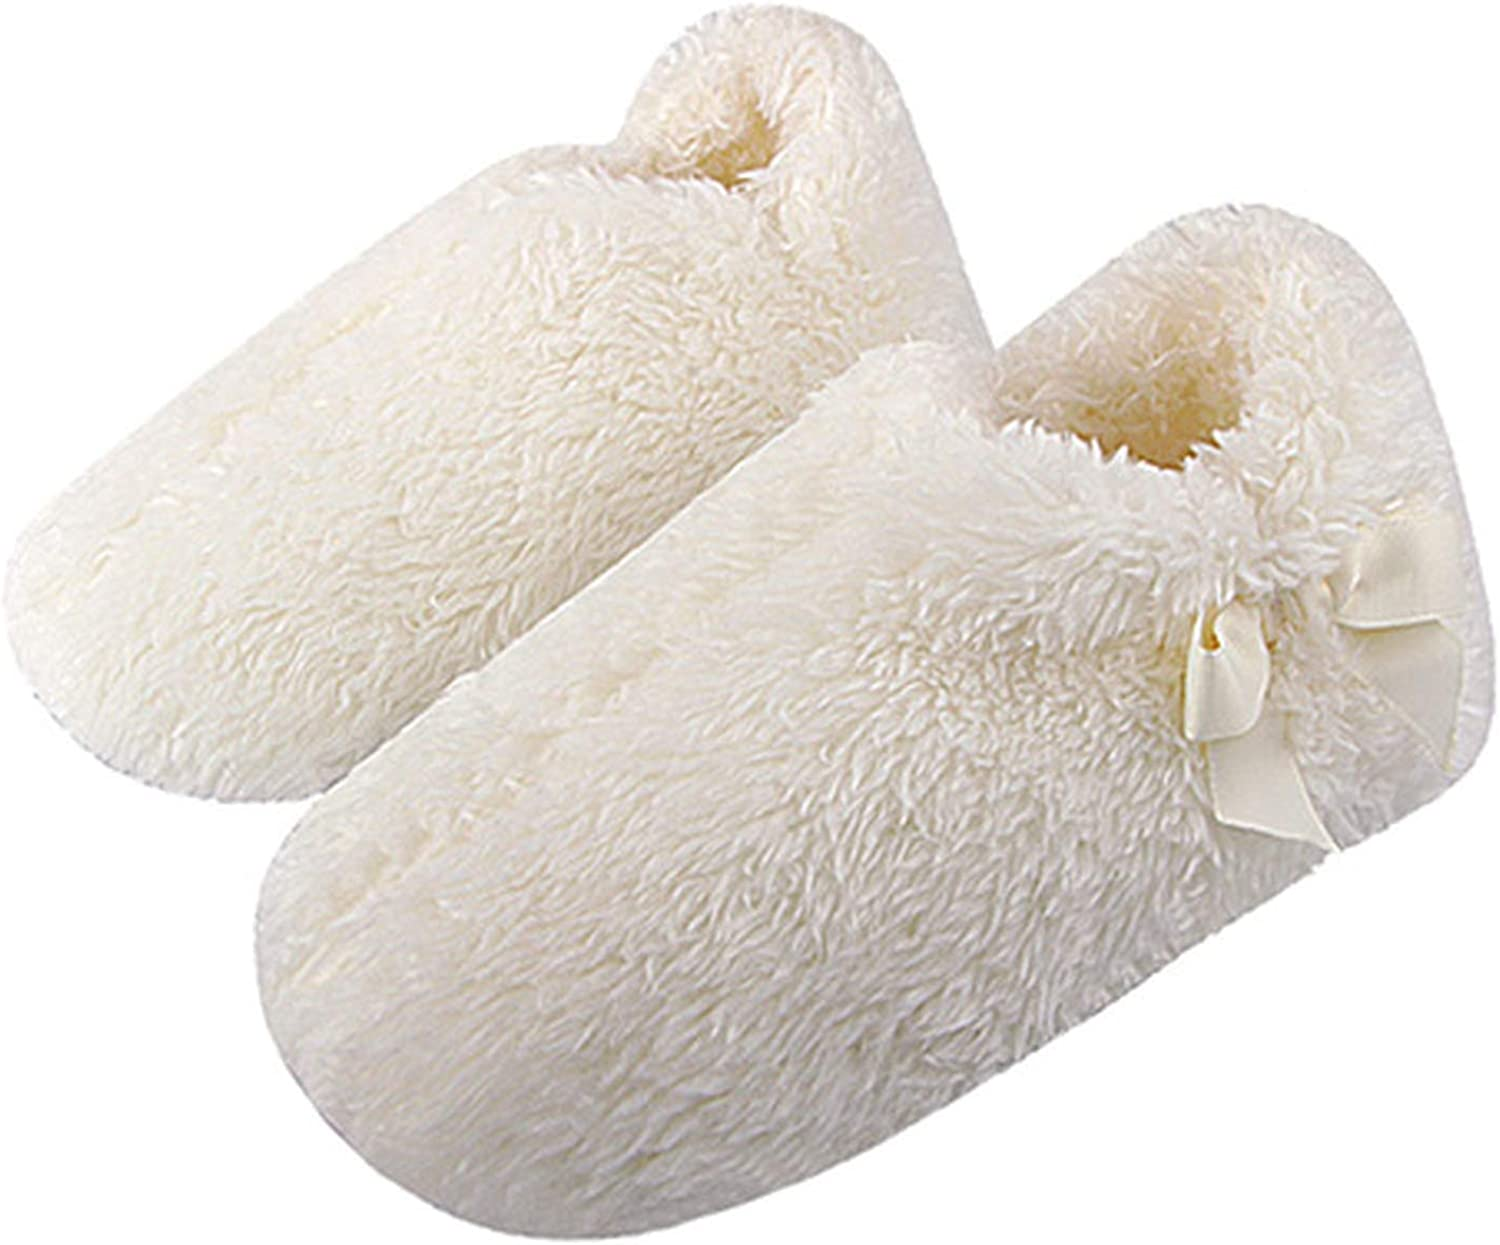 PilotageAuto Winter Fur Slippers shoes Woman Soft Plush Warm Home Slippers Indoor Floor Fluffy Cotton shoes